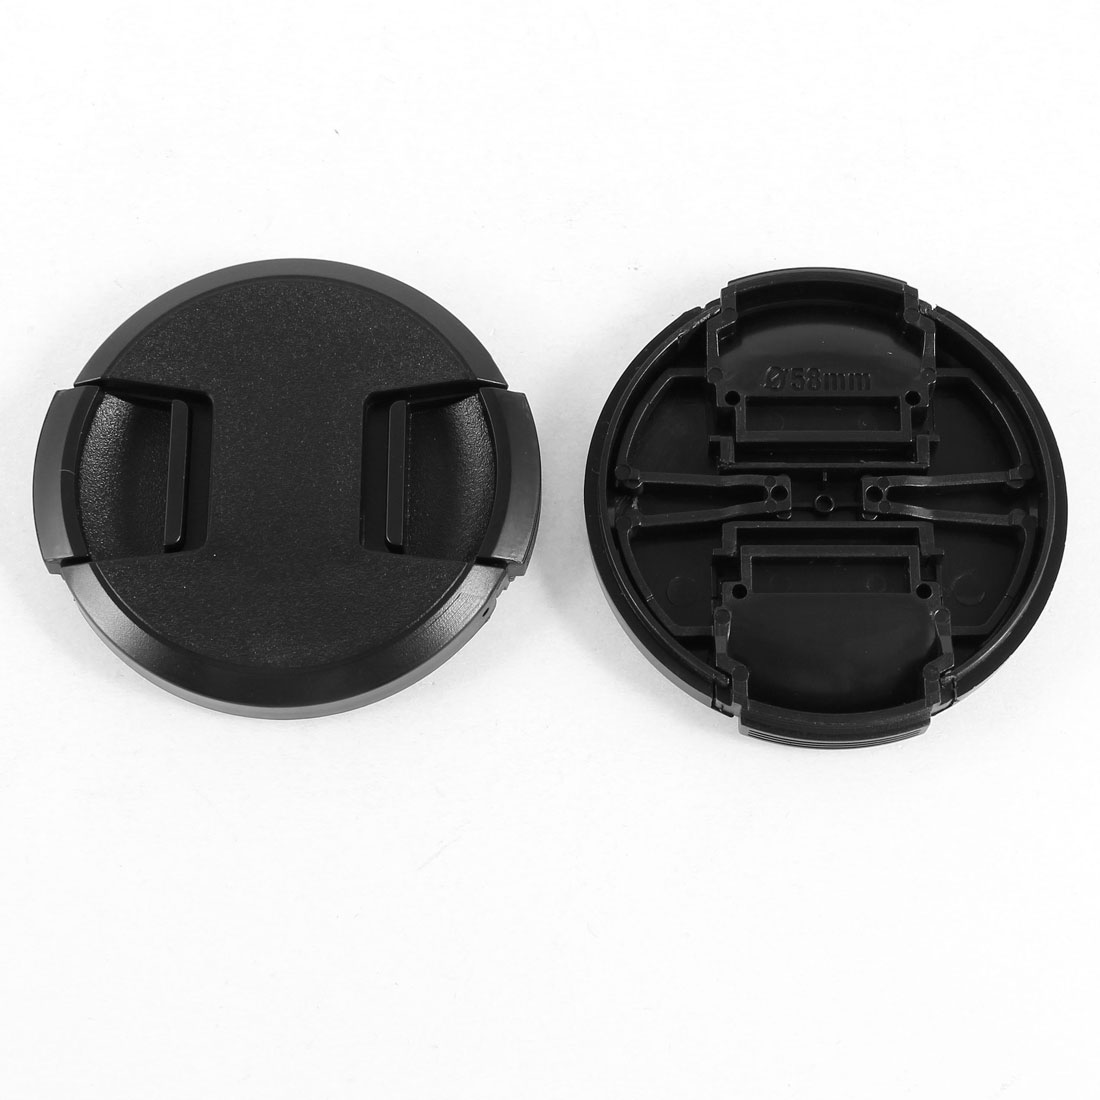 Unique Bargains 2 Pcs Black 58mm Front Lens Cap Cover Replacement for Digital Camera